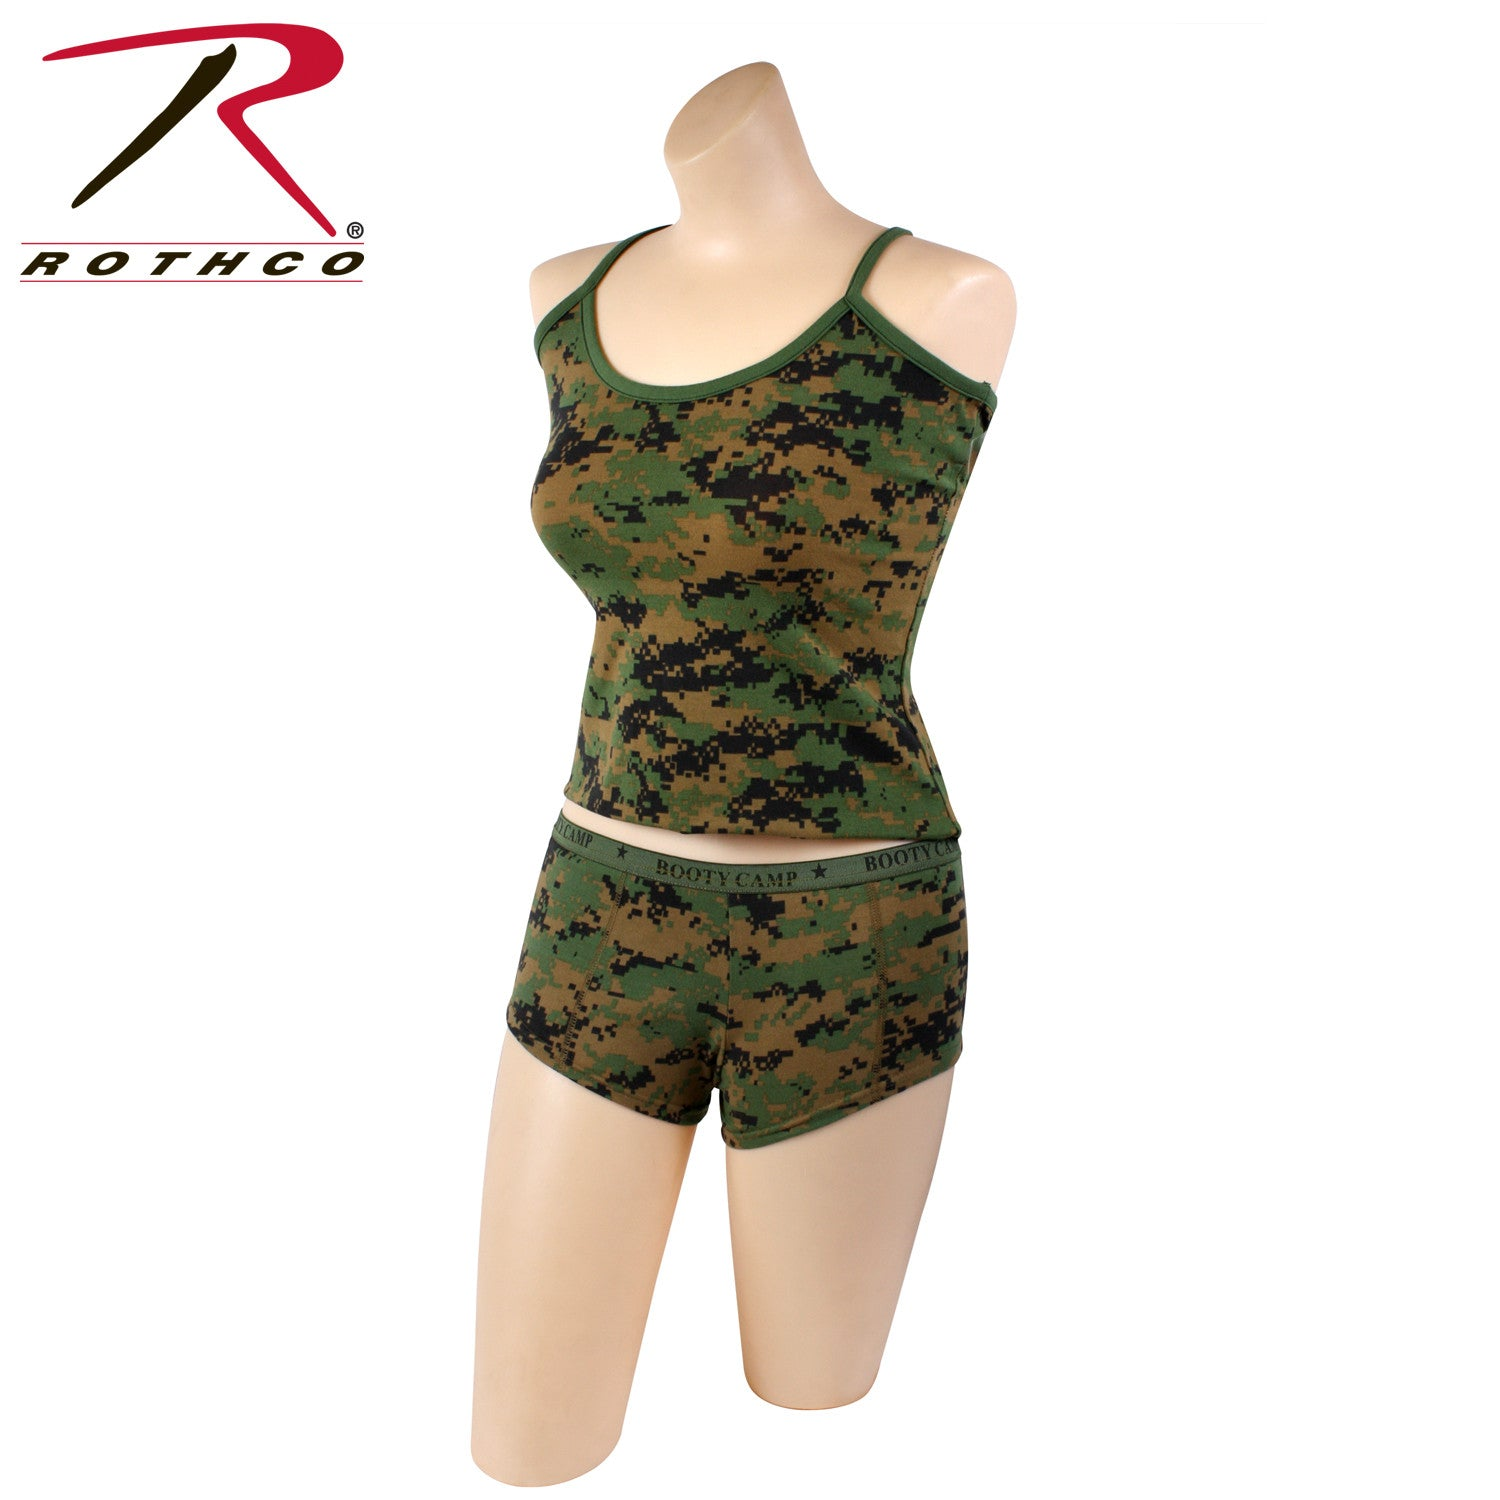 77a9448fb Rothco Woodland Digital   Booty Camp   Booty Shorts   Tank Top - GI ...